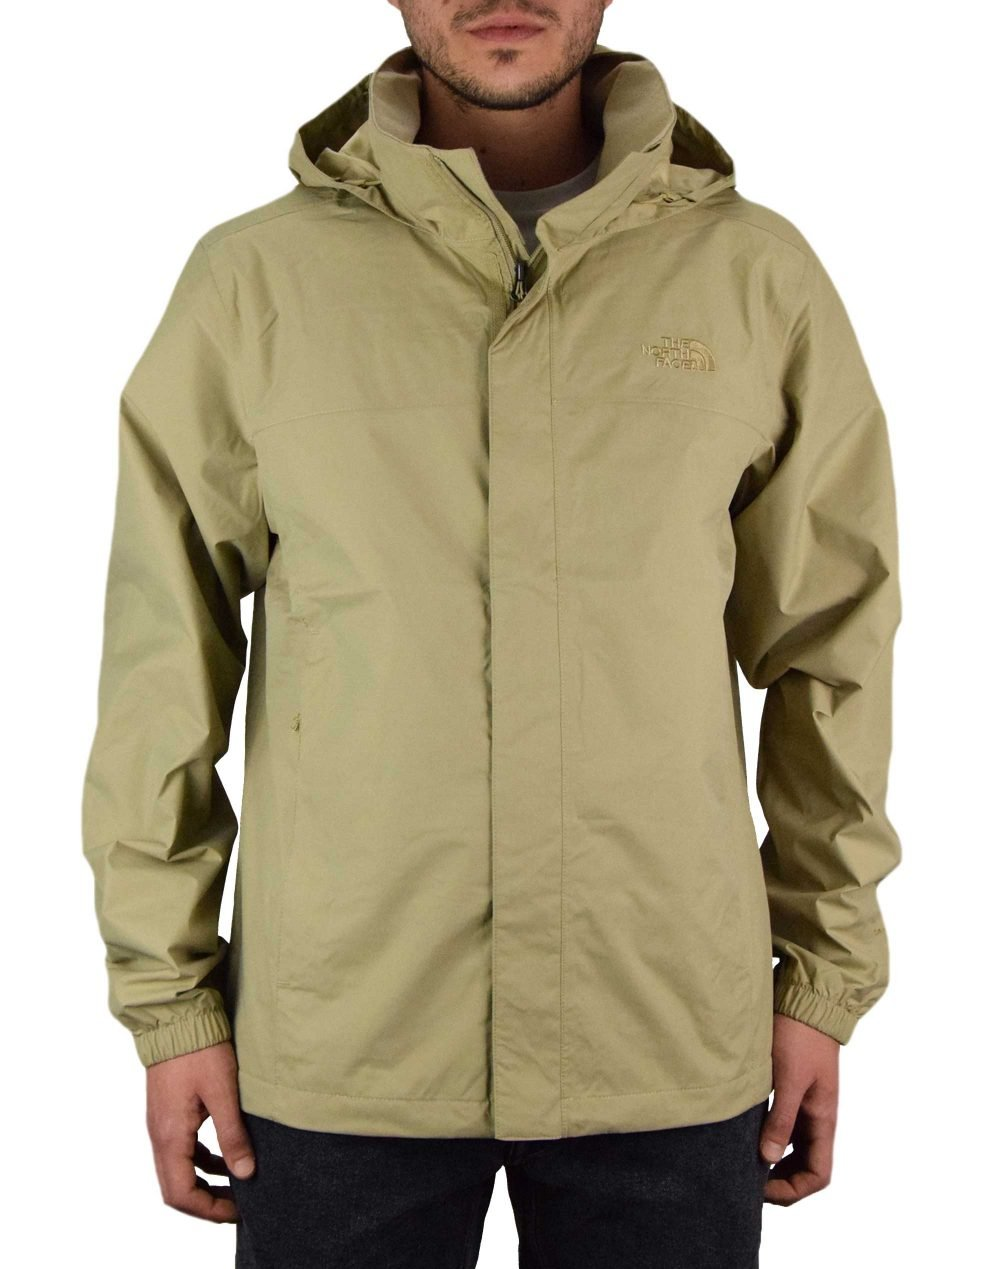 The North Face Resolve 2 Jacket (NF0A2VD5ZDL1) Twill Beige